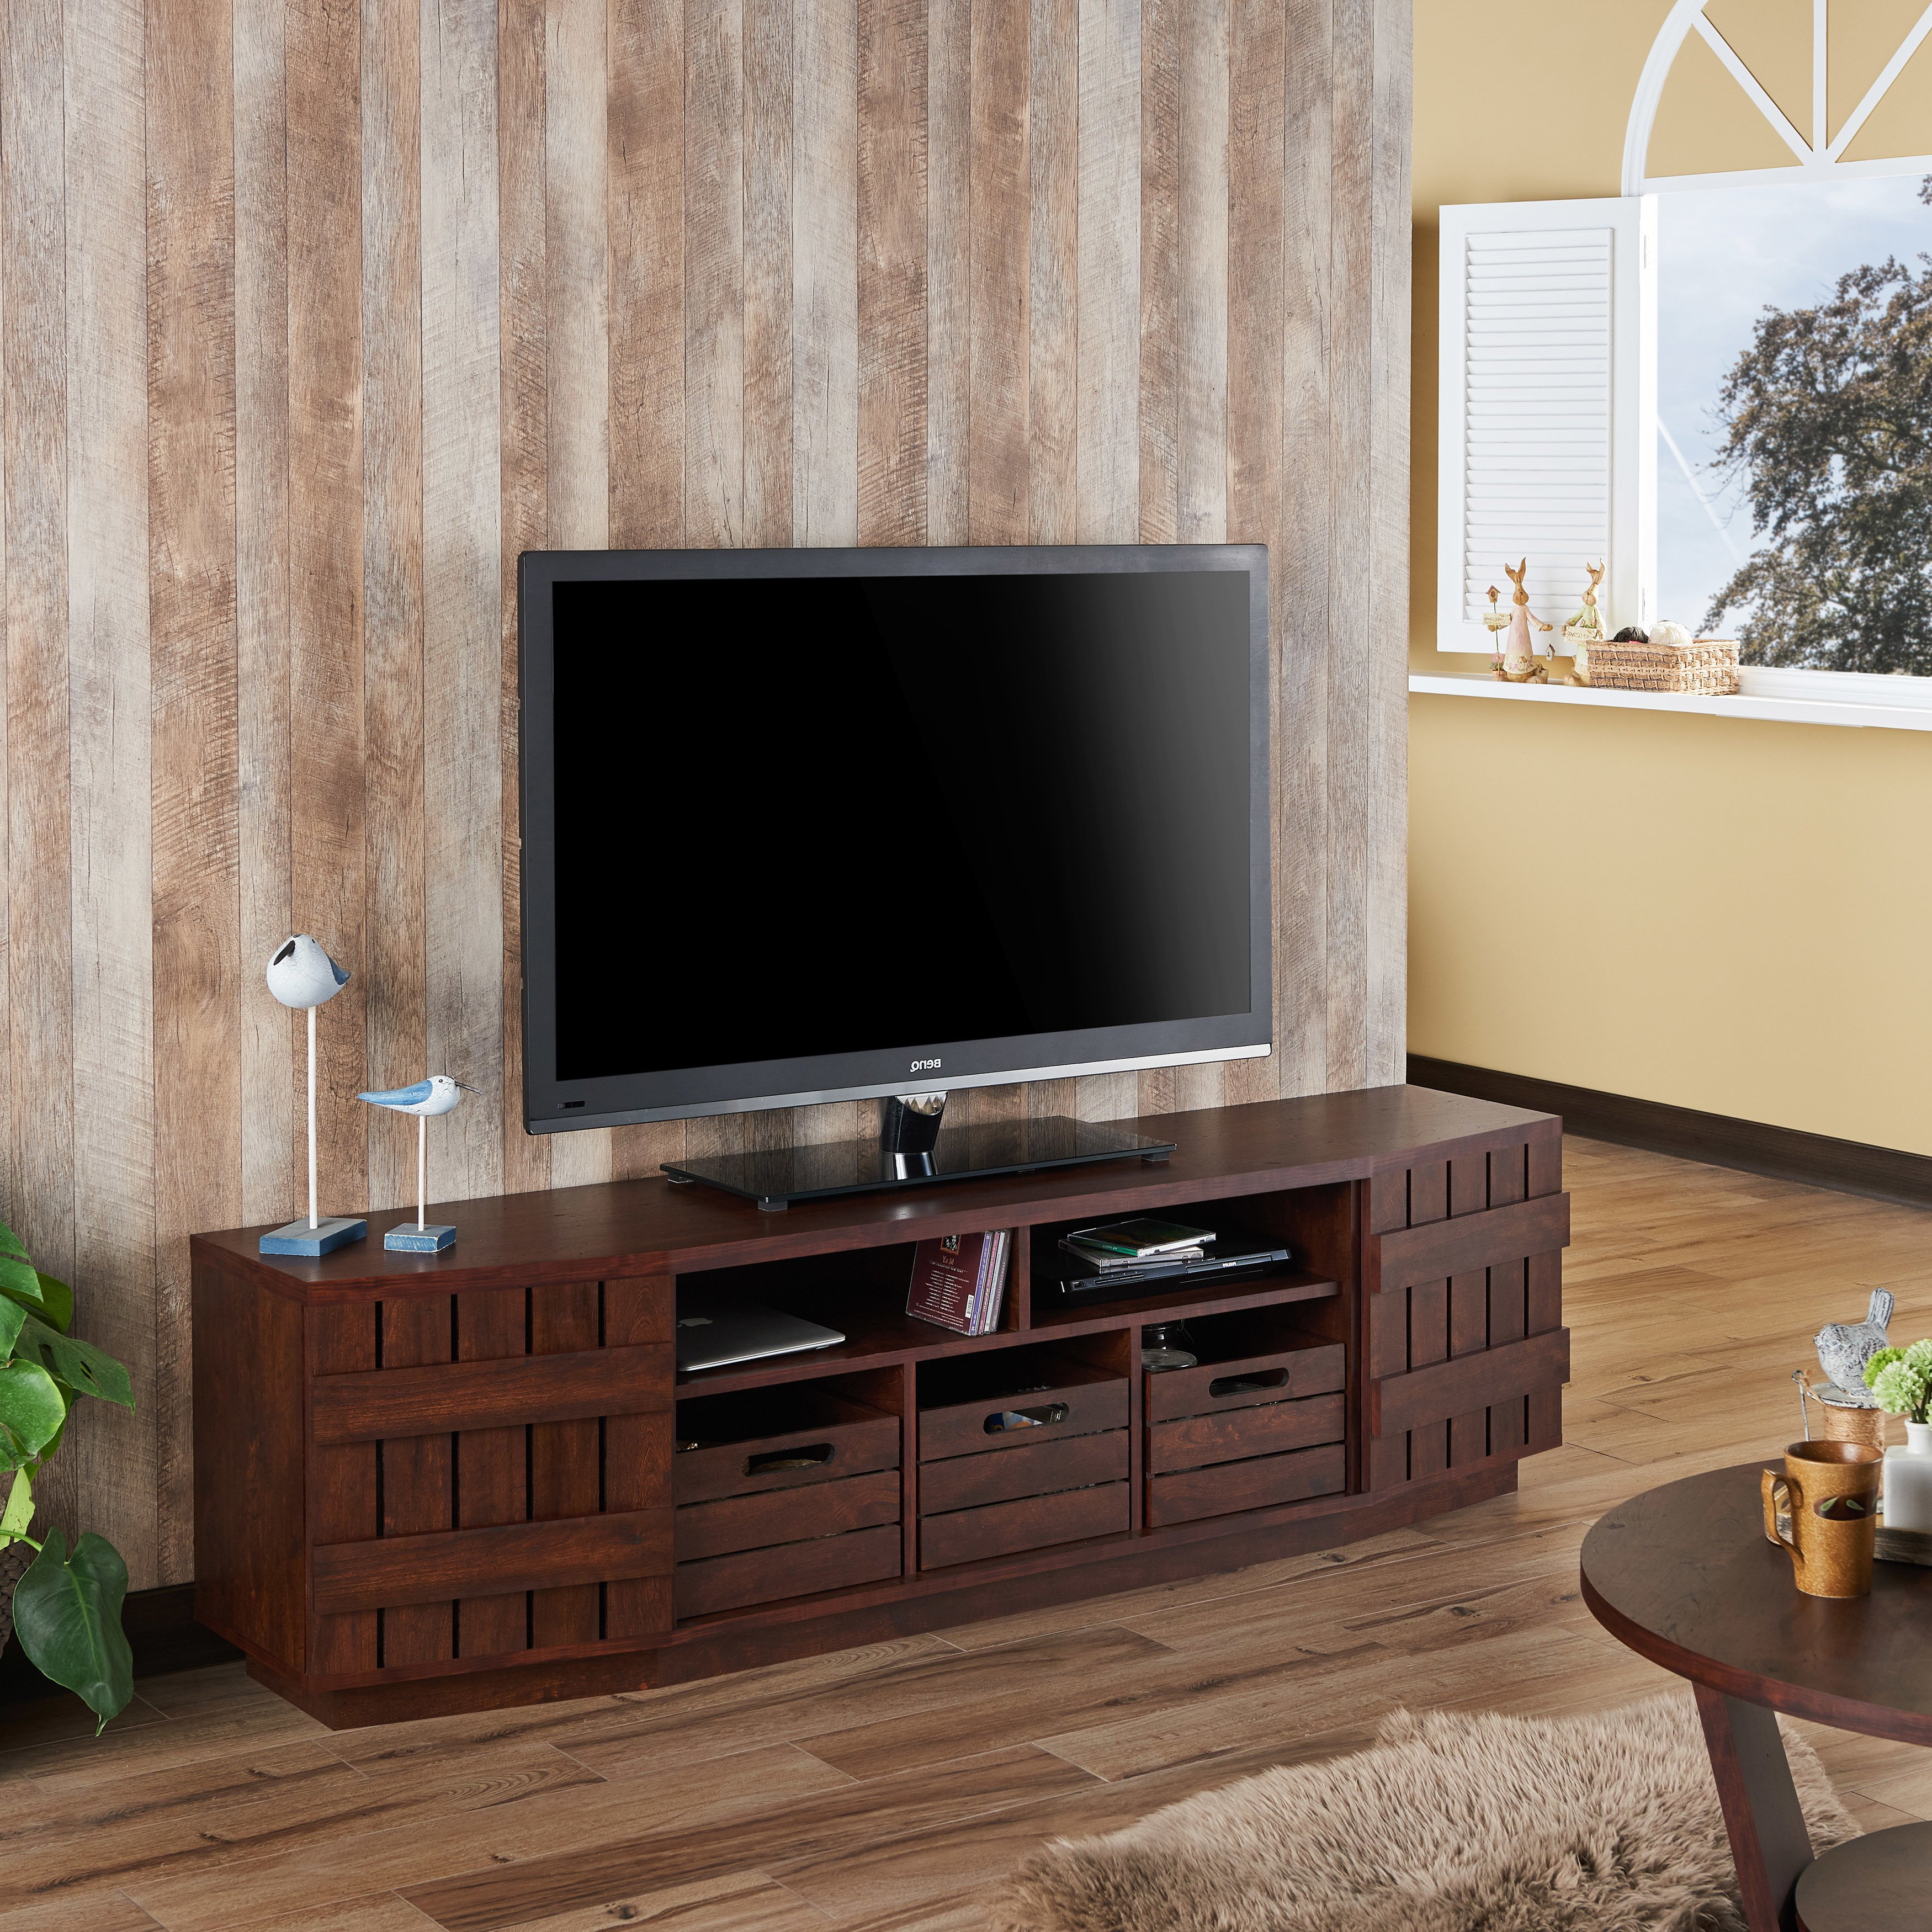 Most Popular Shop Furniture Of America Harla Rustic 70 Inch Tv Stand With In Casey Umber 54 Inch Tv Stands (View 14 of 20)